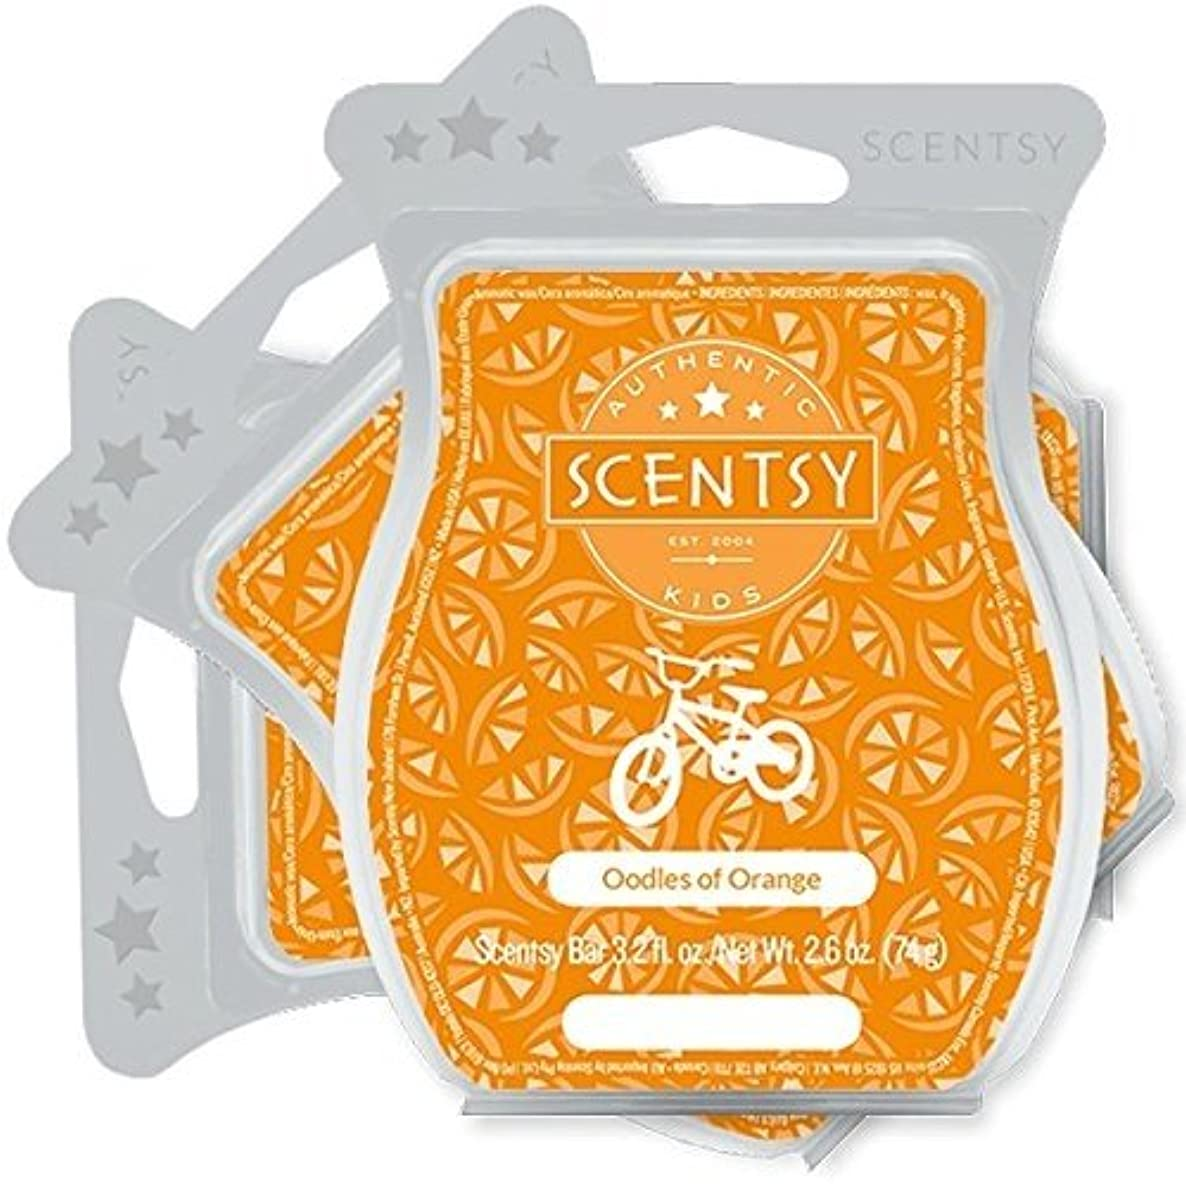 Scentsy, Oodles of Orange, Wickless Candle Tart Warmer Wax 3.2 Oz Bar, 3-pack (3)